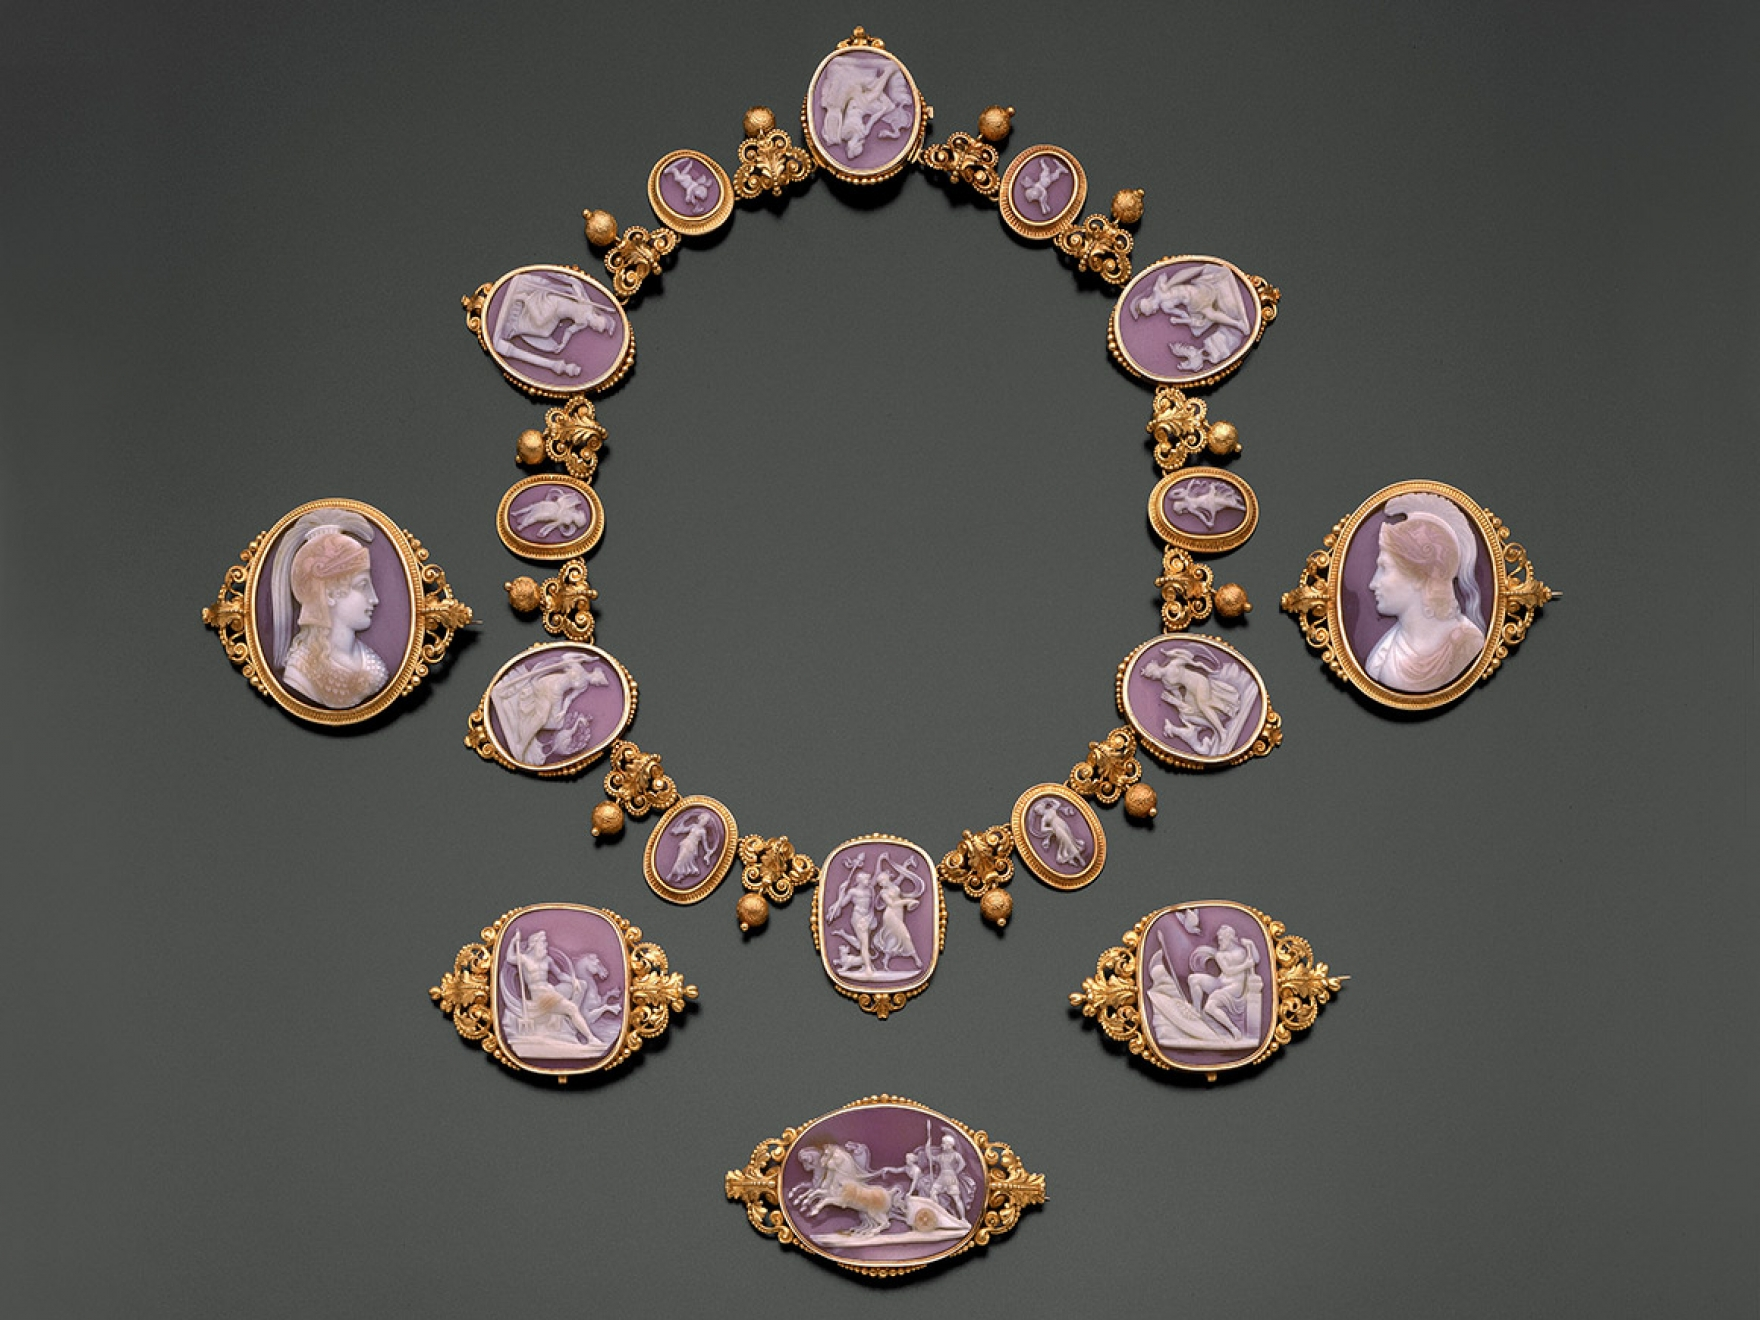 Necklace and brooches made of shell and gold